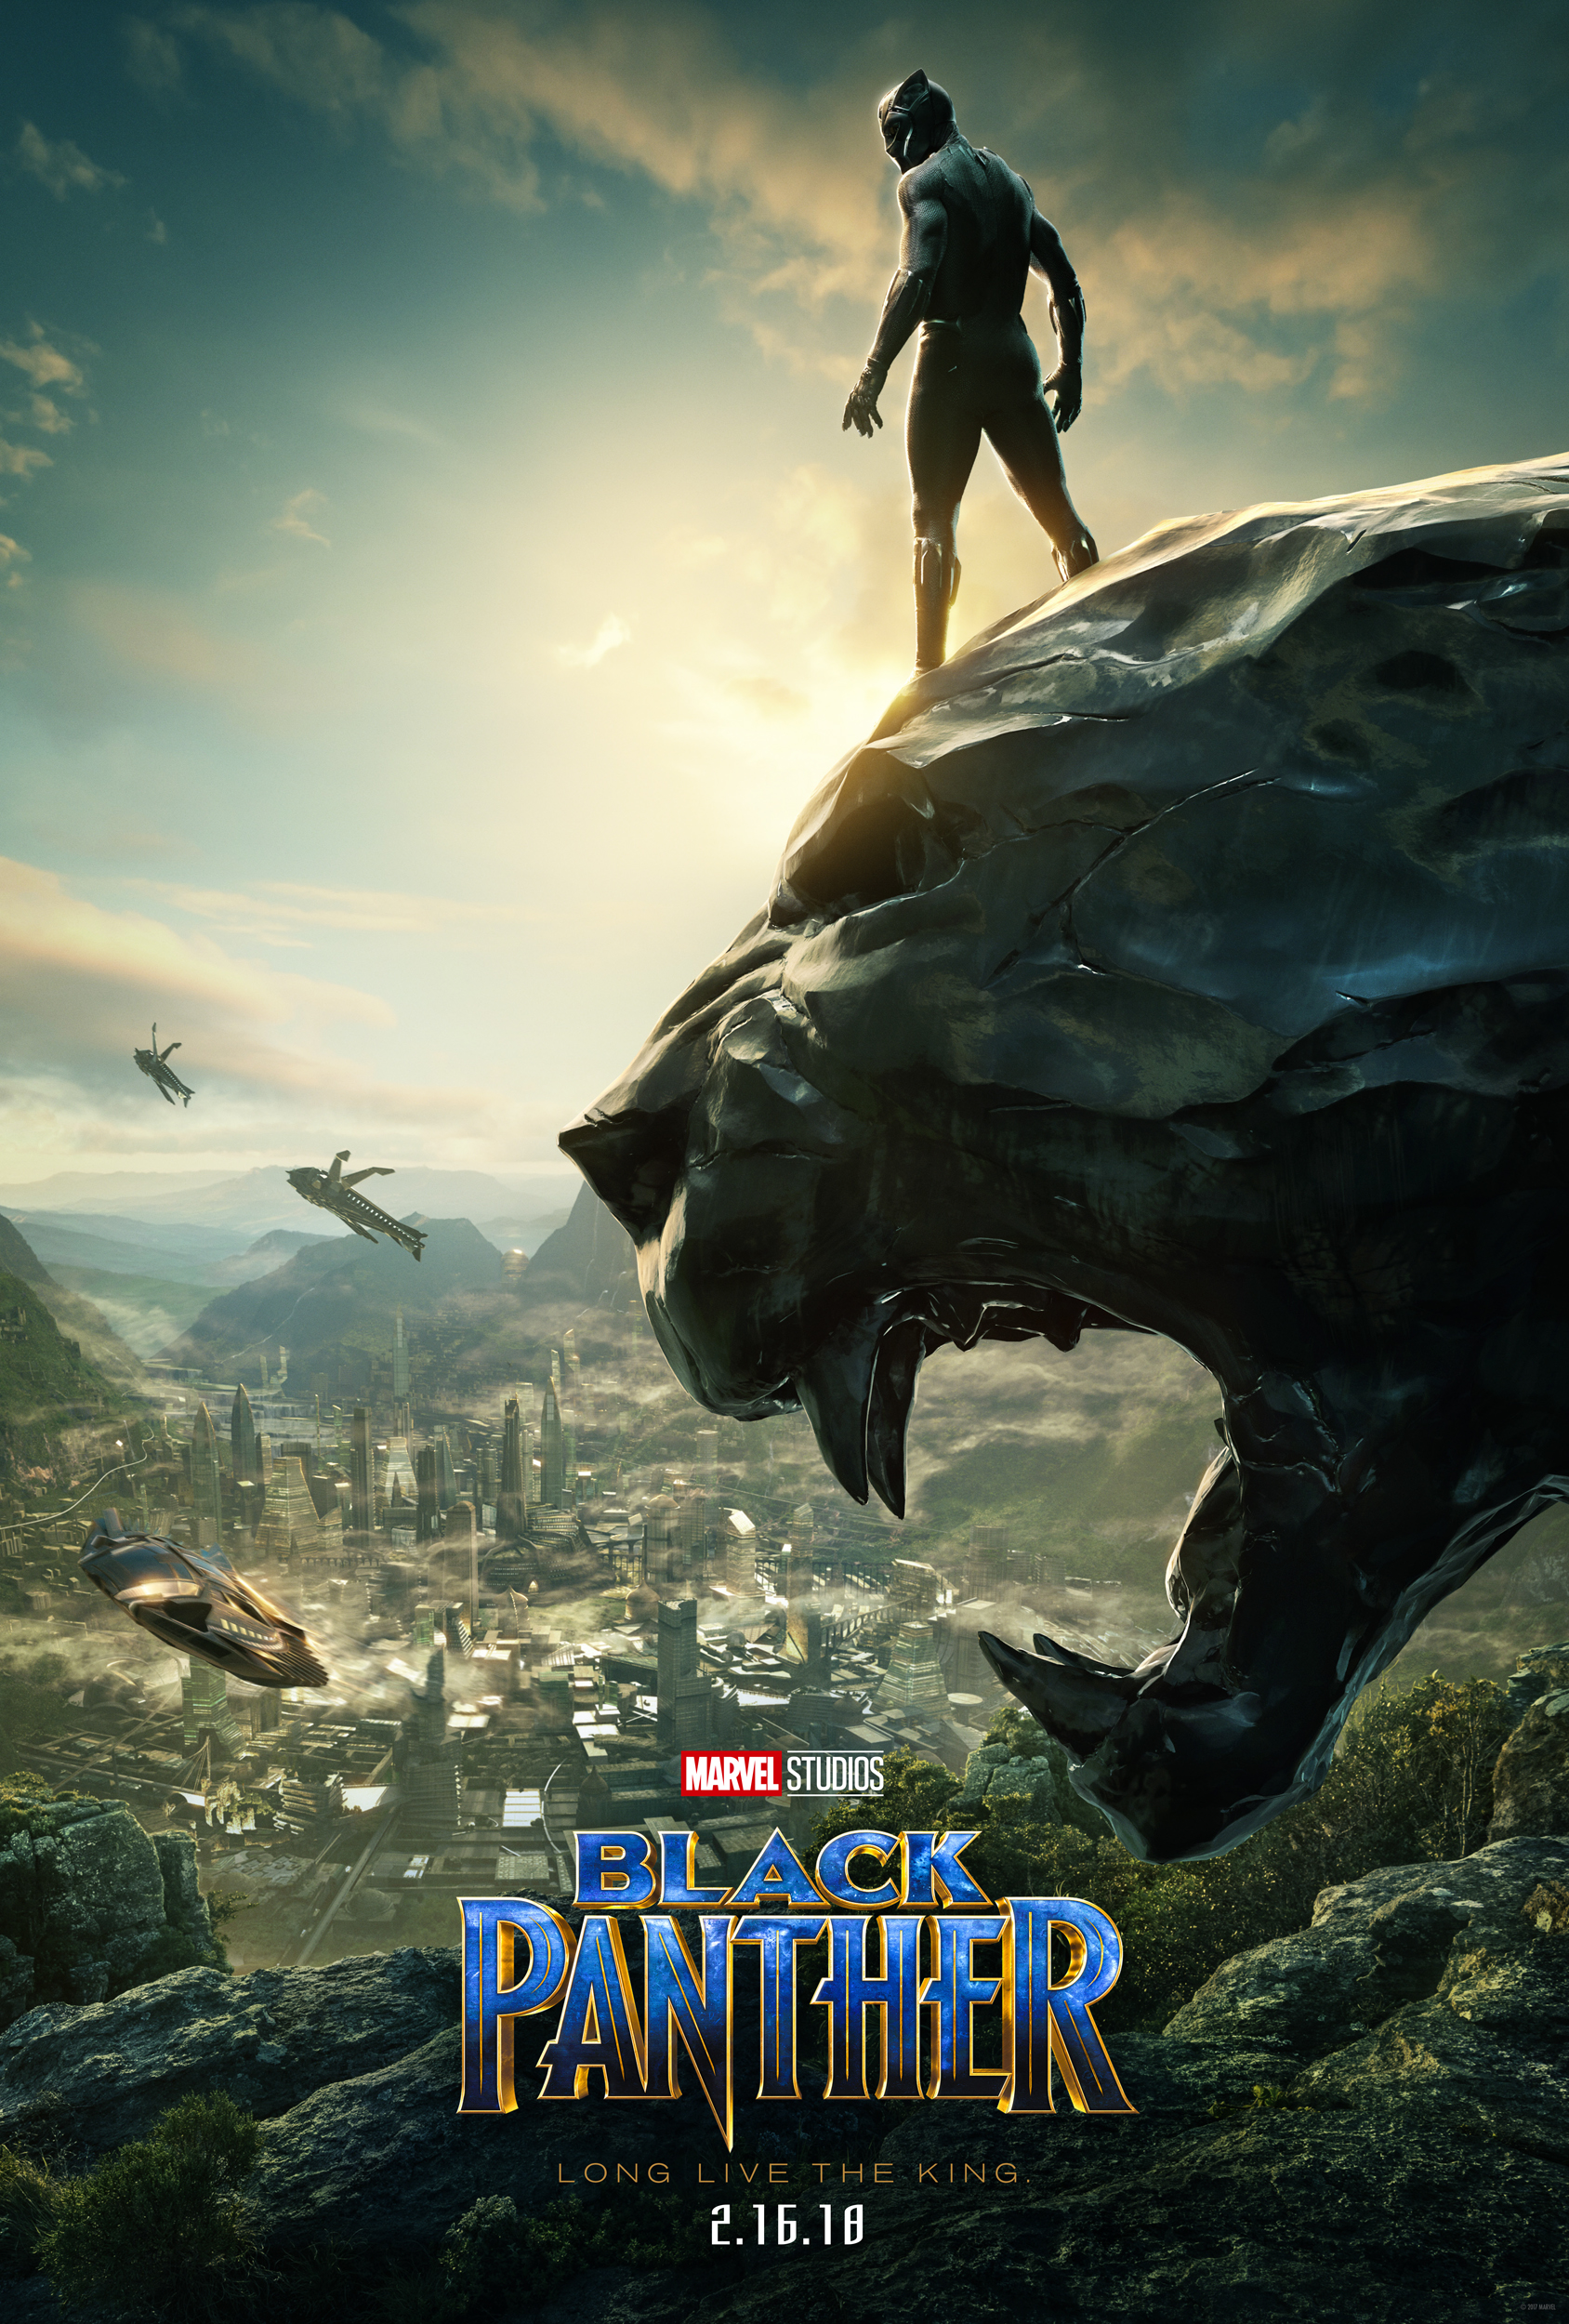 Black Panther Takes In His Kingdom In New Movie Poster Freaksugar